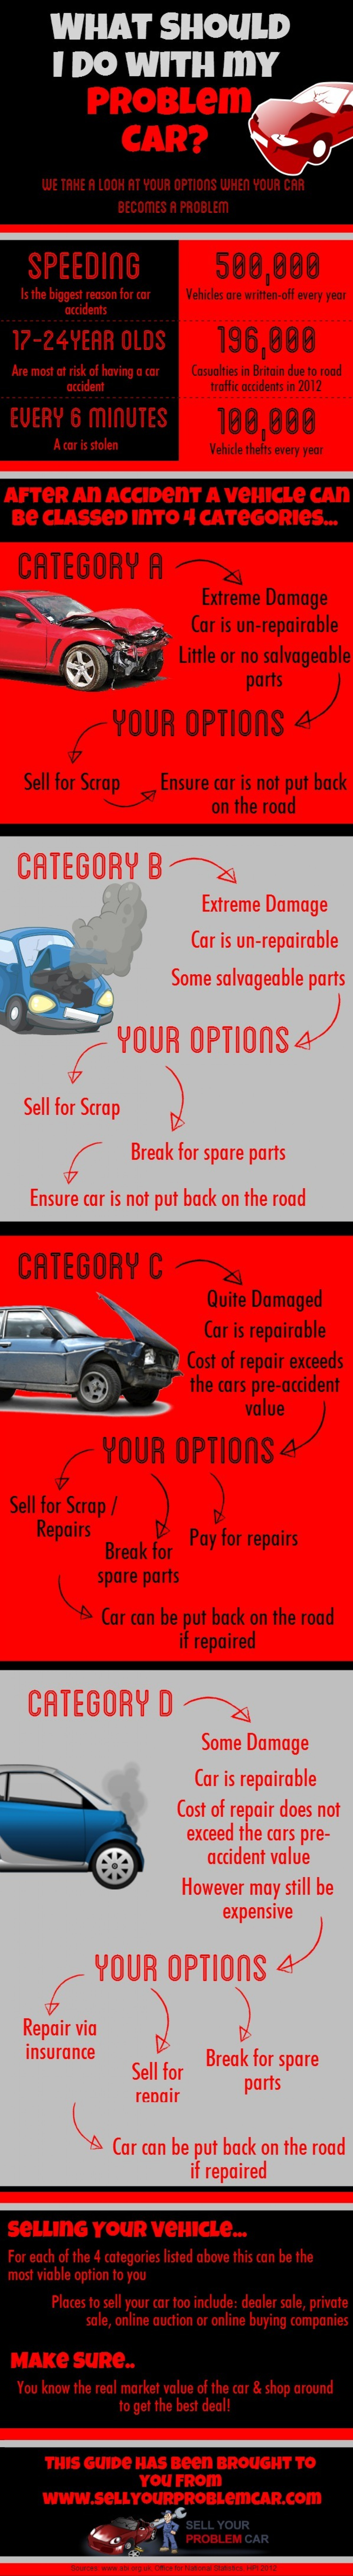 What Should you do with your Problem Car? Infographic